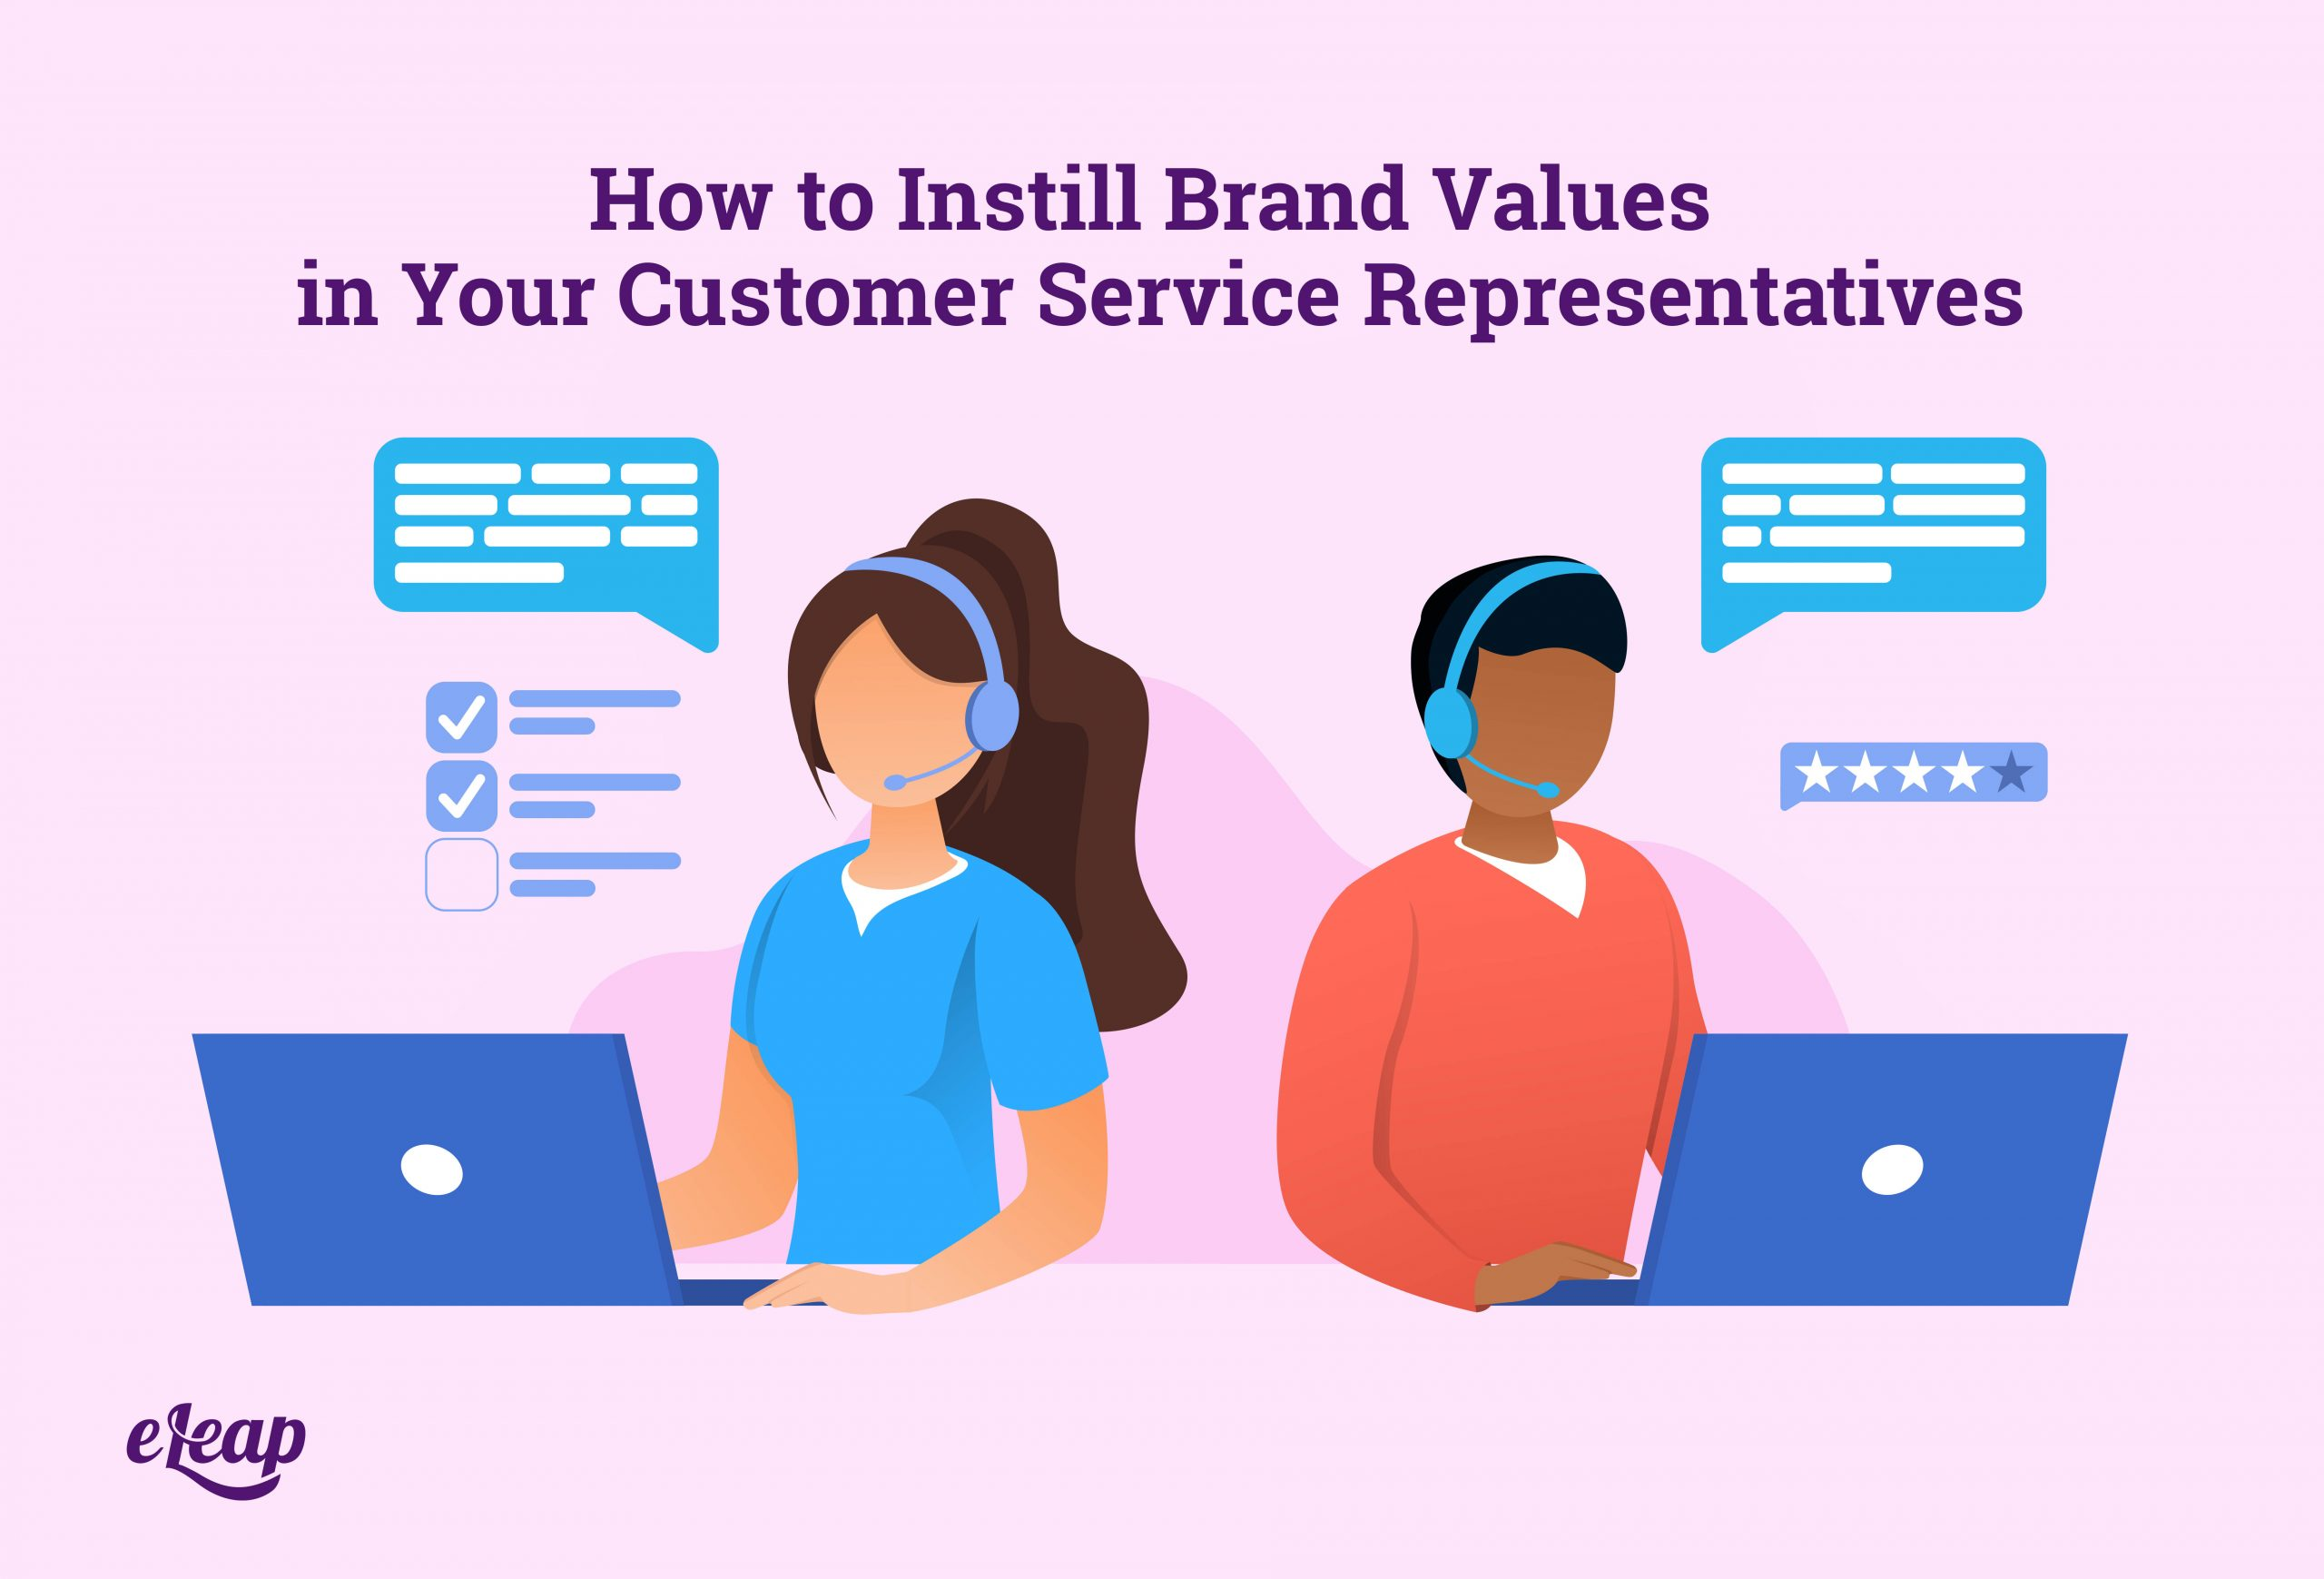 How to Instill Brand Values in Your Customer Service Representatives